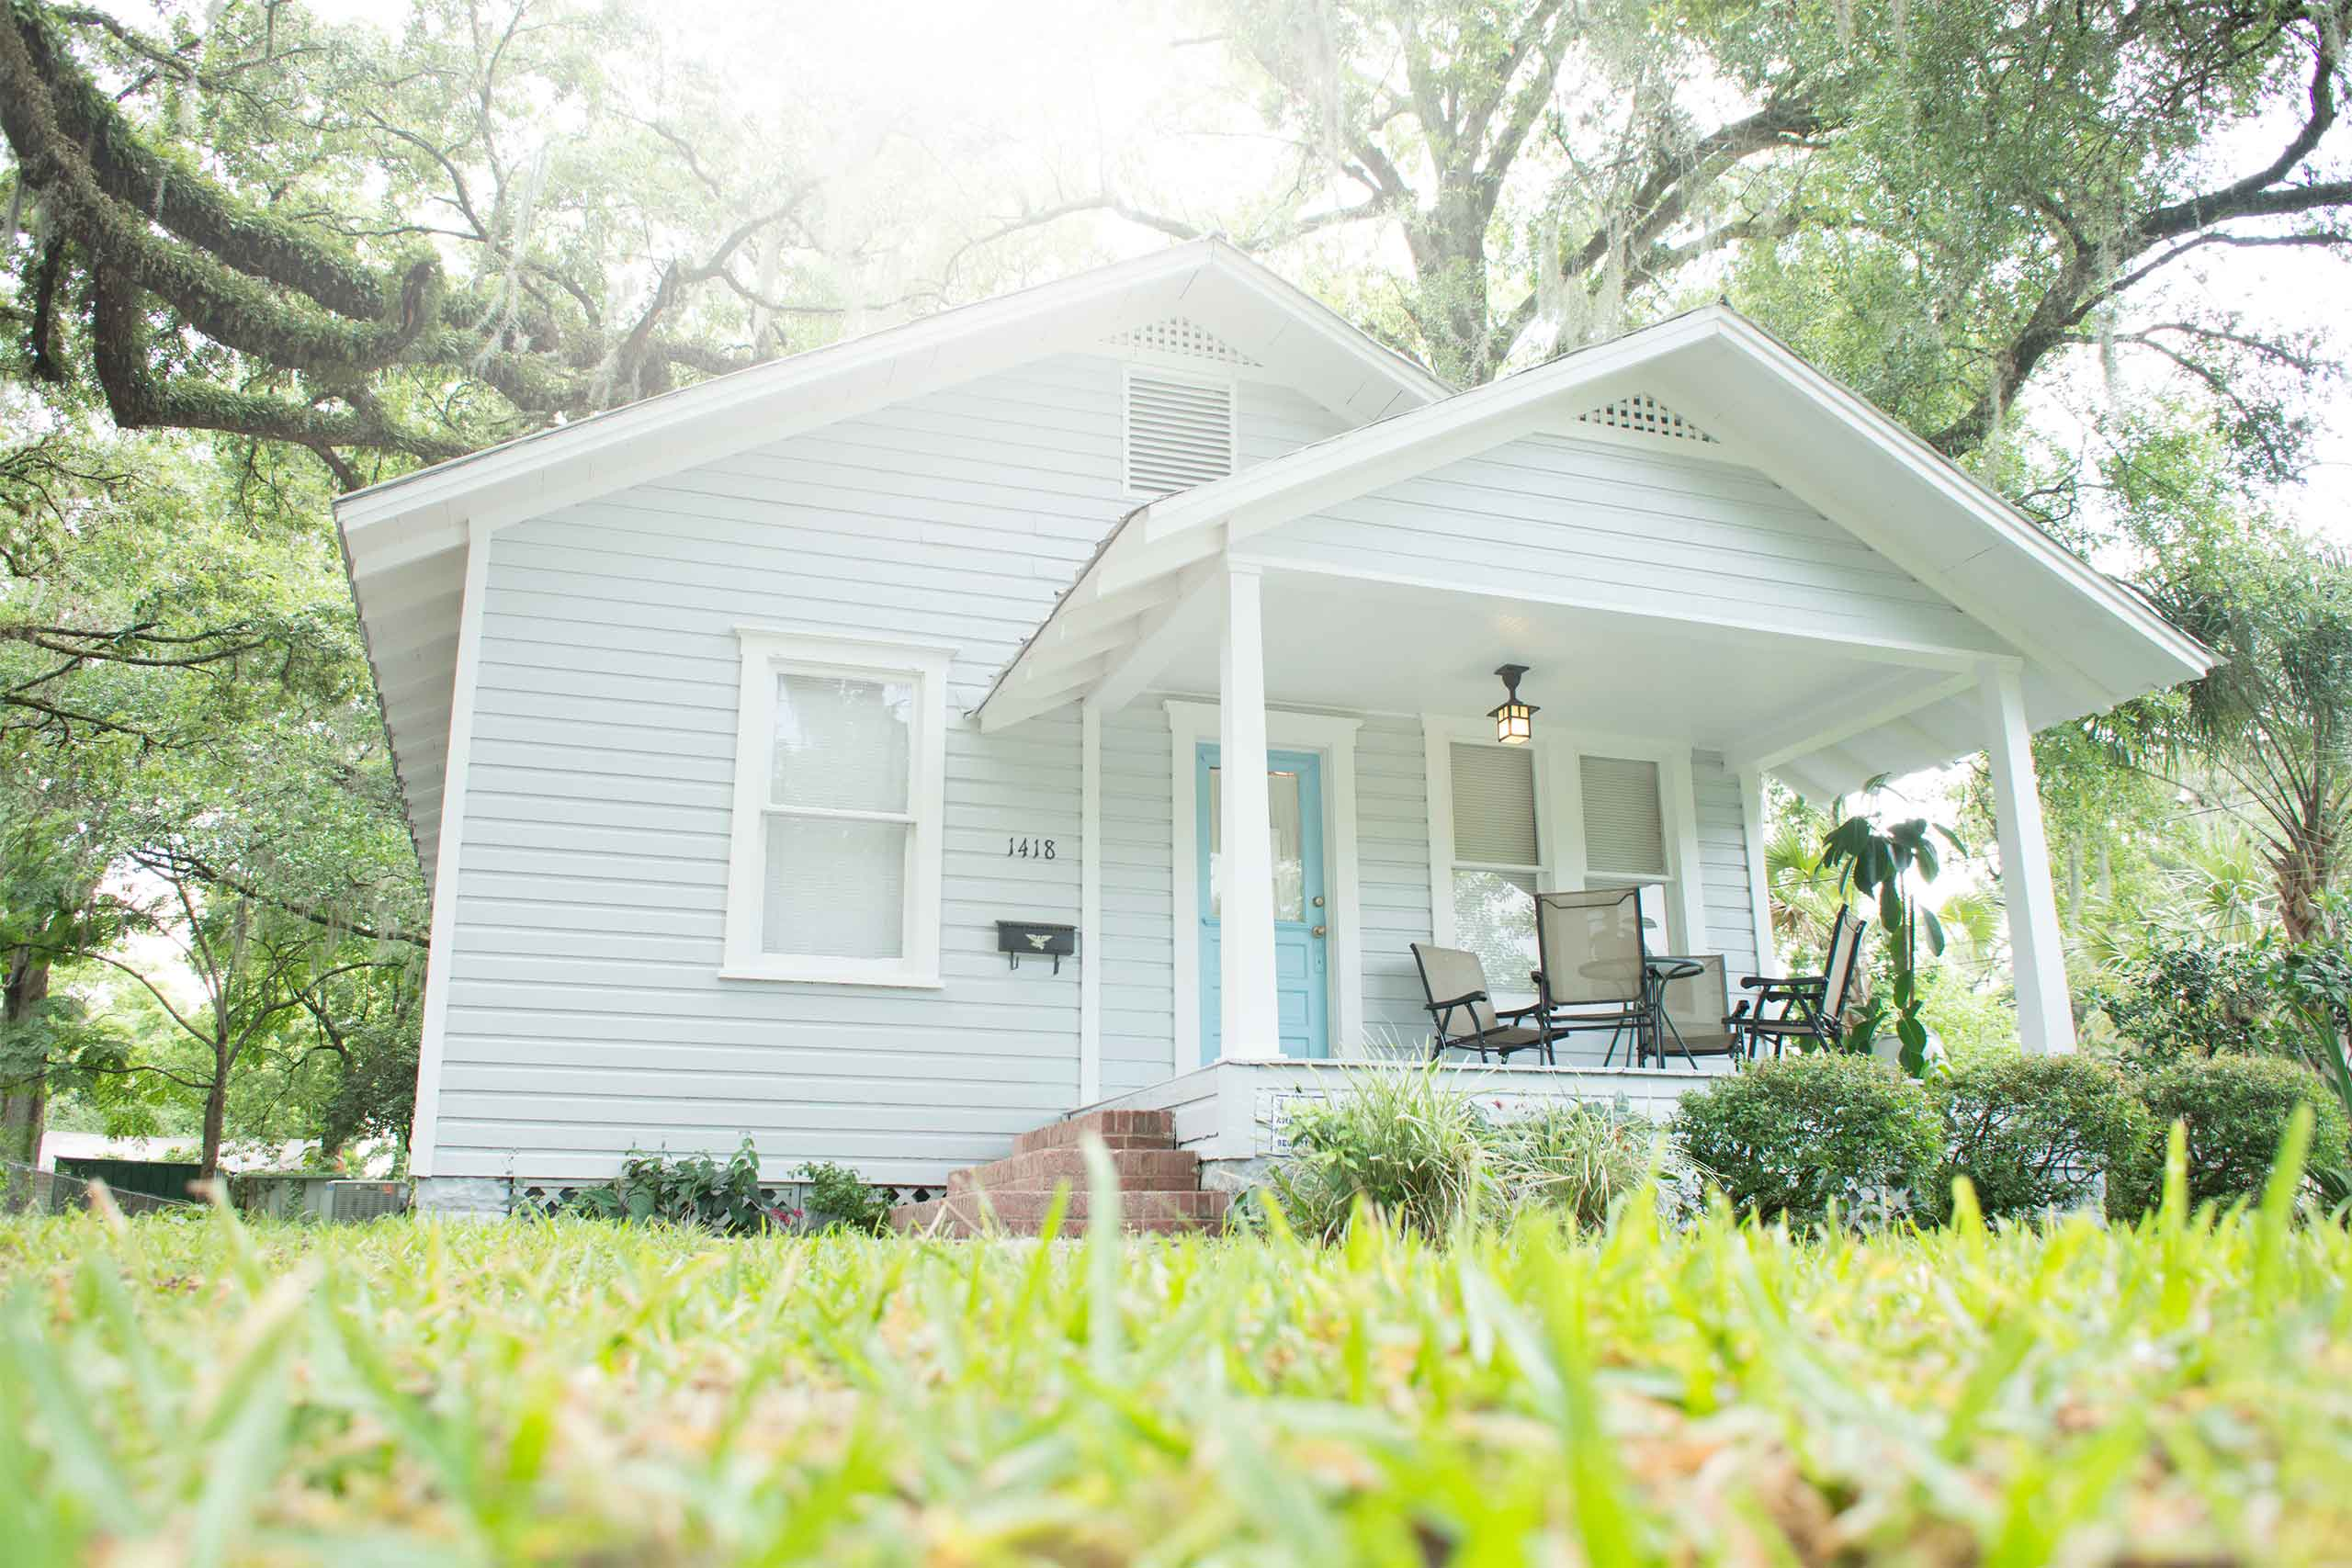 Photo of the Kerouac House, which is run by the Kerouac Project, in College Park, Orlando, Florida.